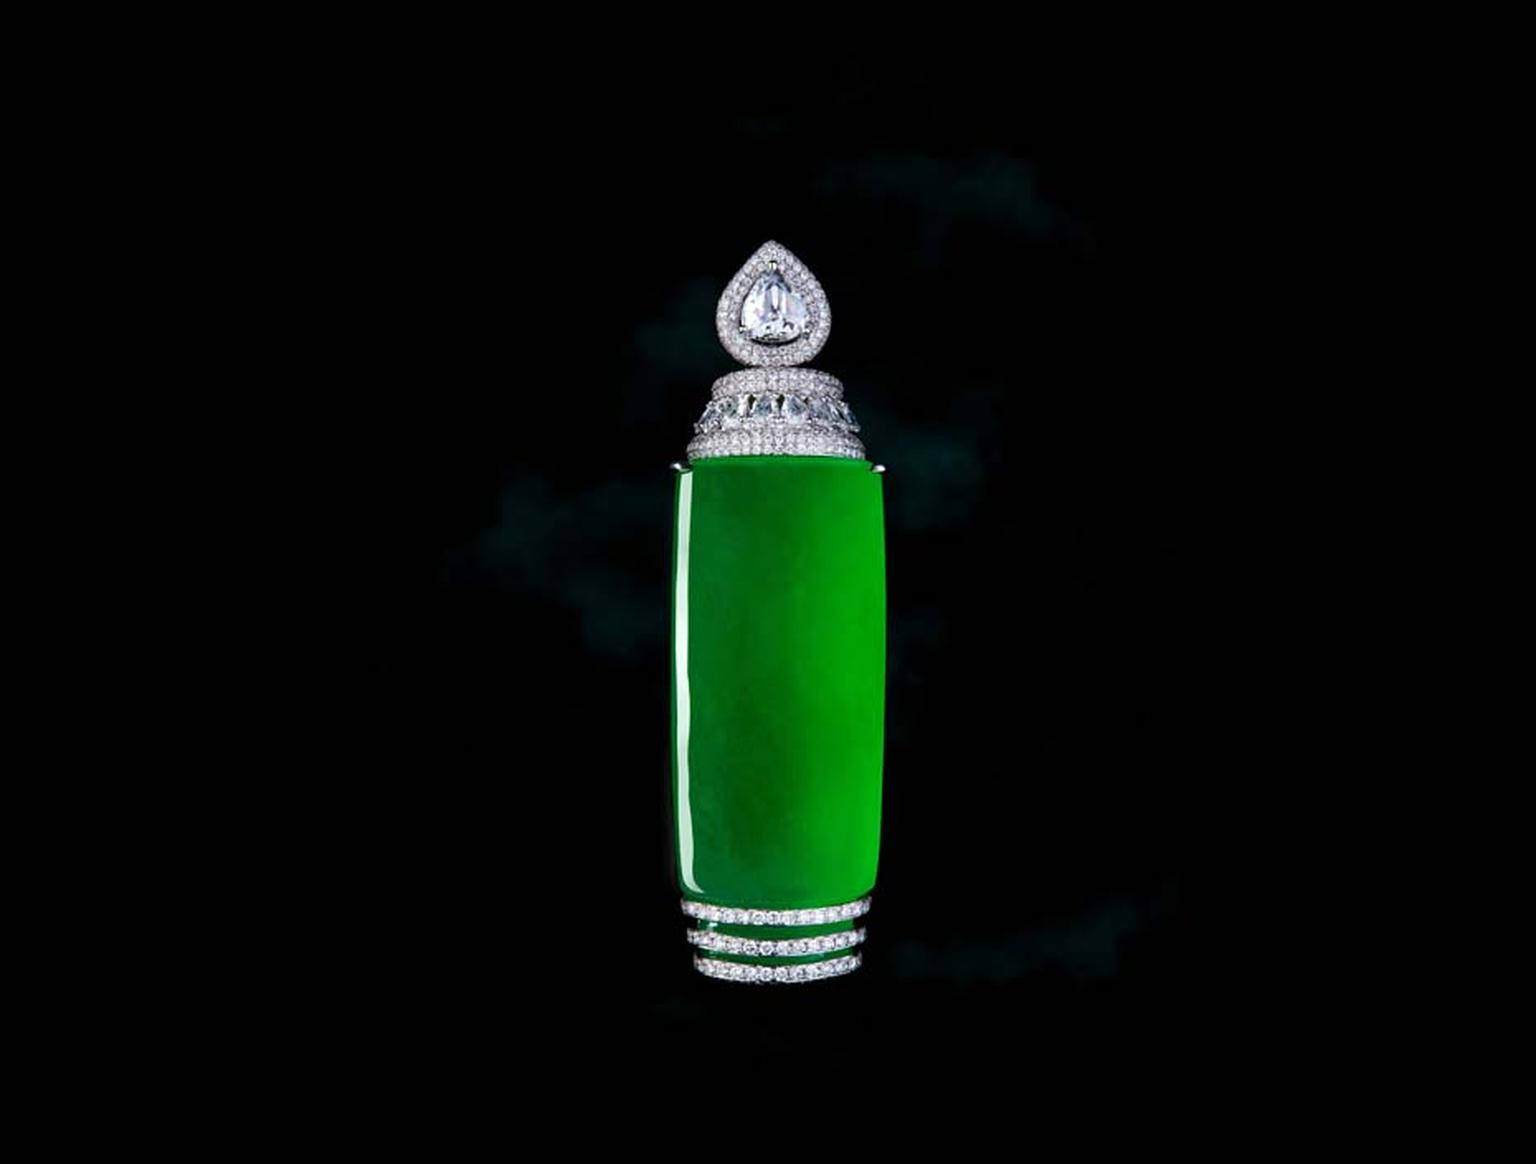 Zhaoyi's mouthwatering jade jewellery debuts at Baselworld